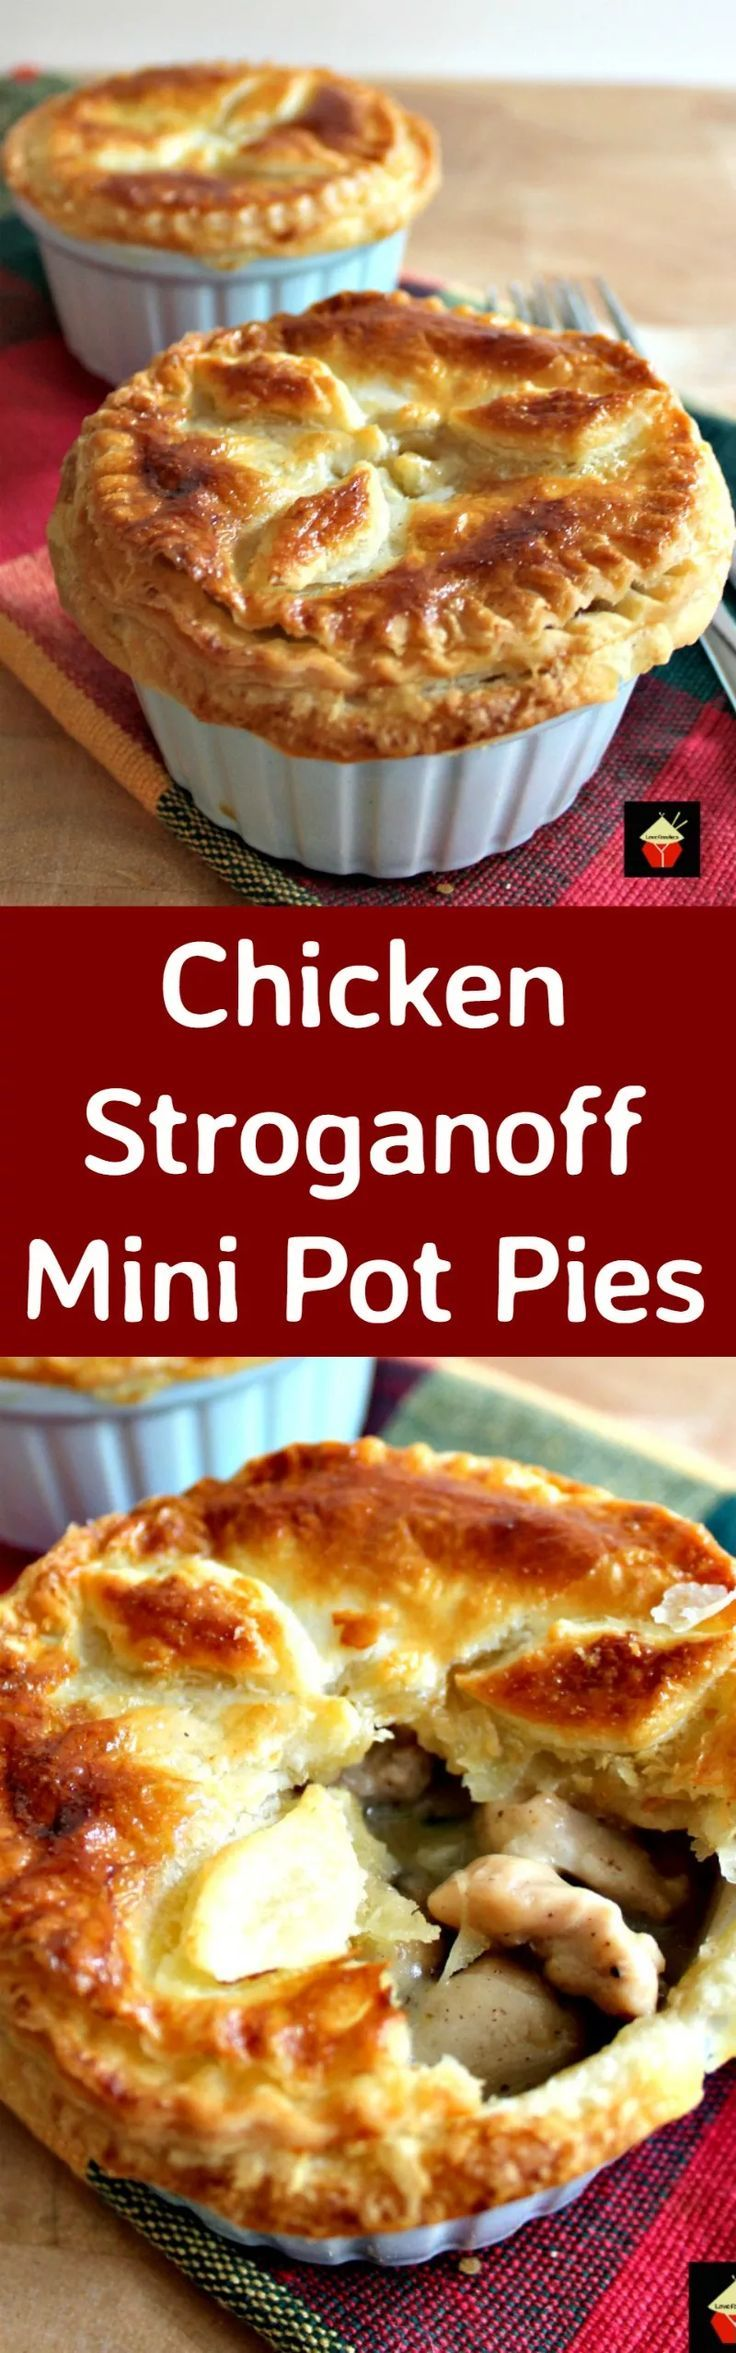 Mini Chicken Stroganoff Pot Pies with a to die for flaky buttery pie crust. Serve piping hot from the oven! So good! | http://Lovefoodies.com